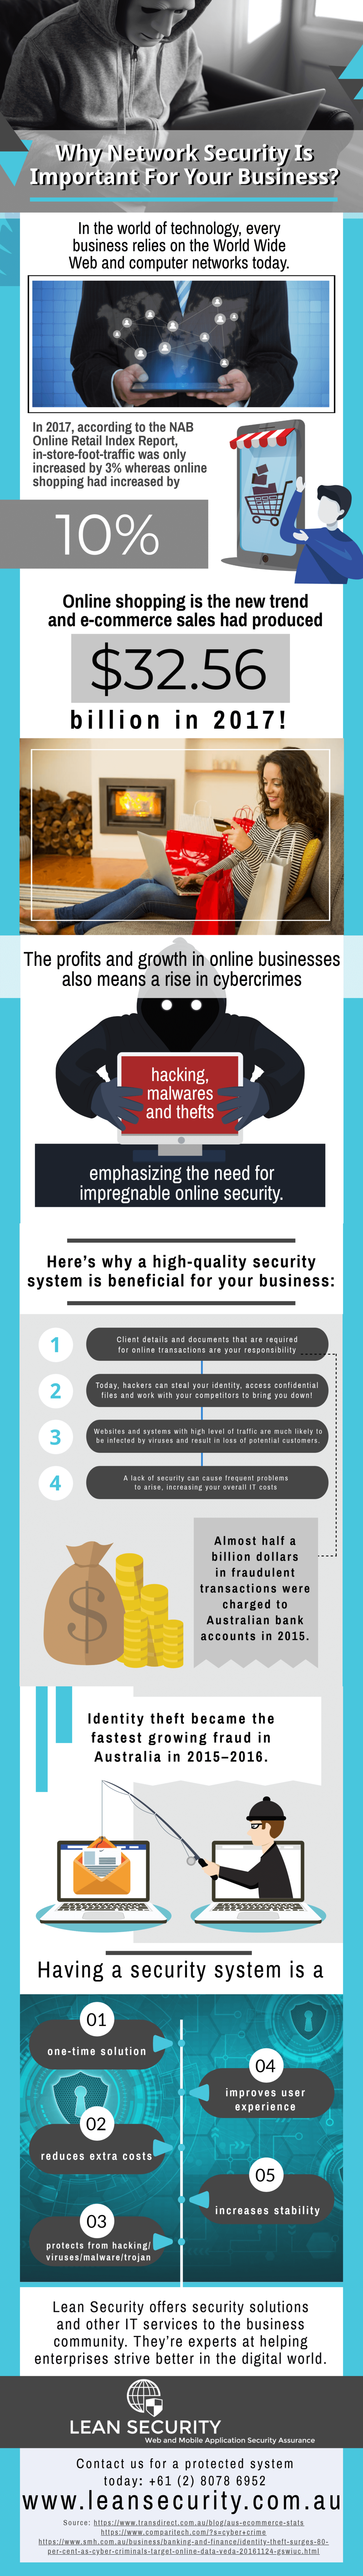 Why Network Security is Important For Your Business.png